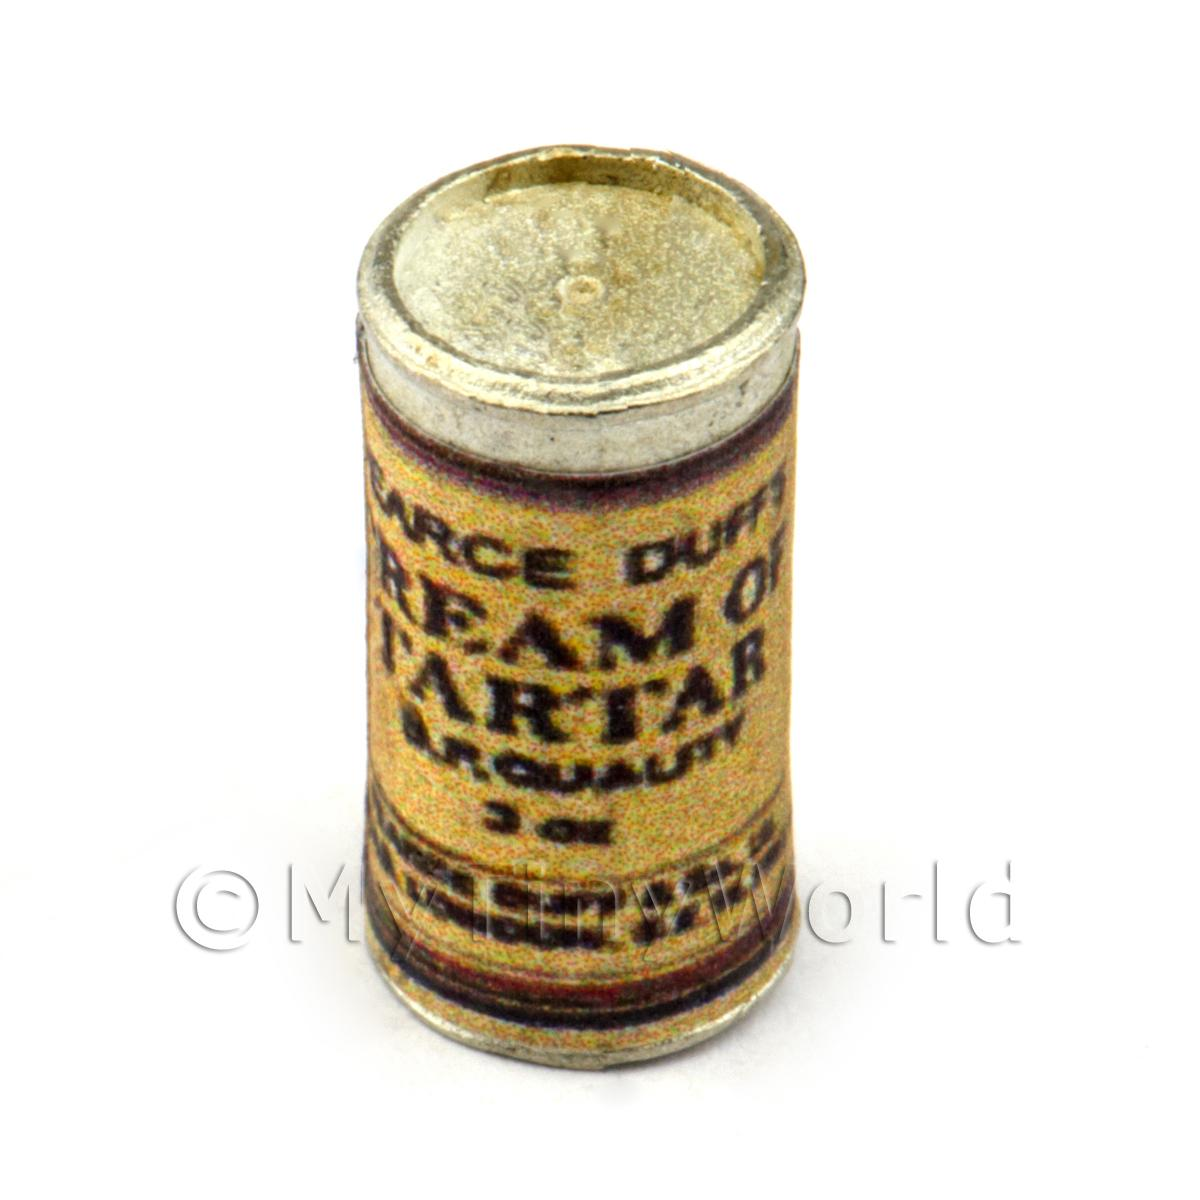 Dolls House Miniature Can Of Cream Of Tartar